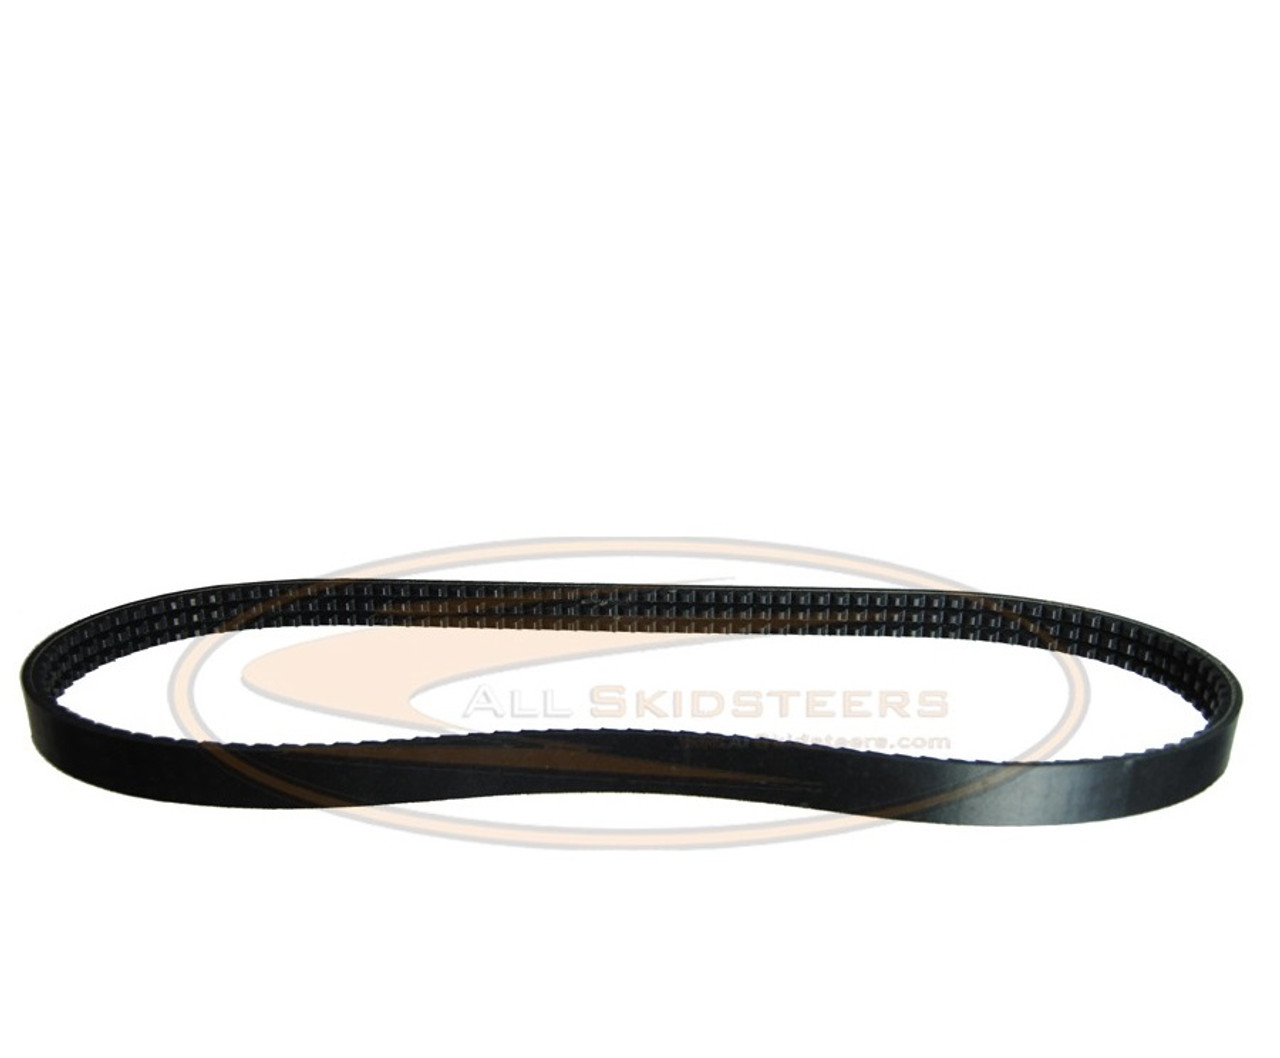 Drive Belt For Bobcat® Skid Steer S Series | Replaces OEM # 6667322